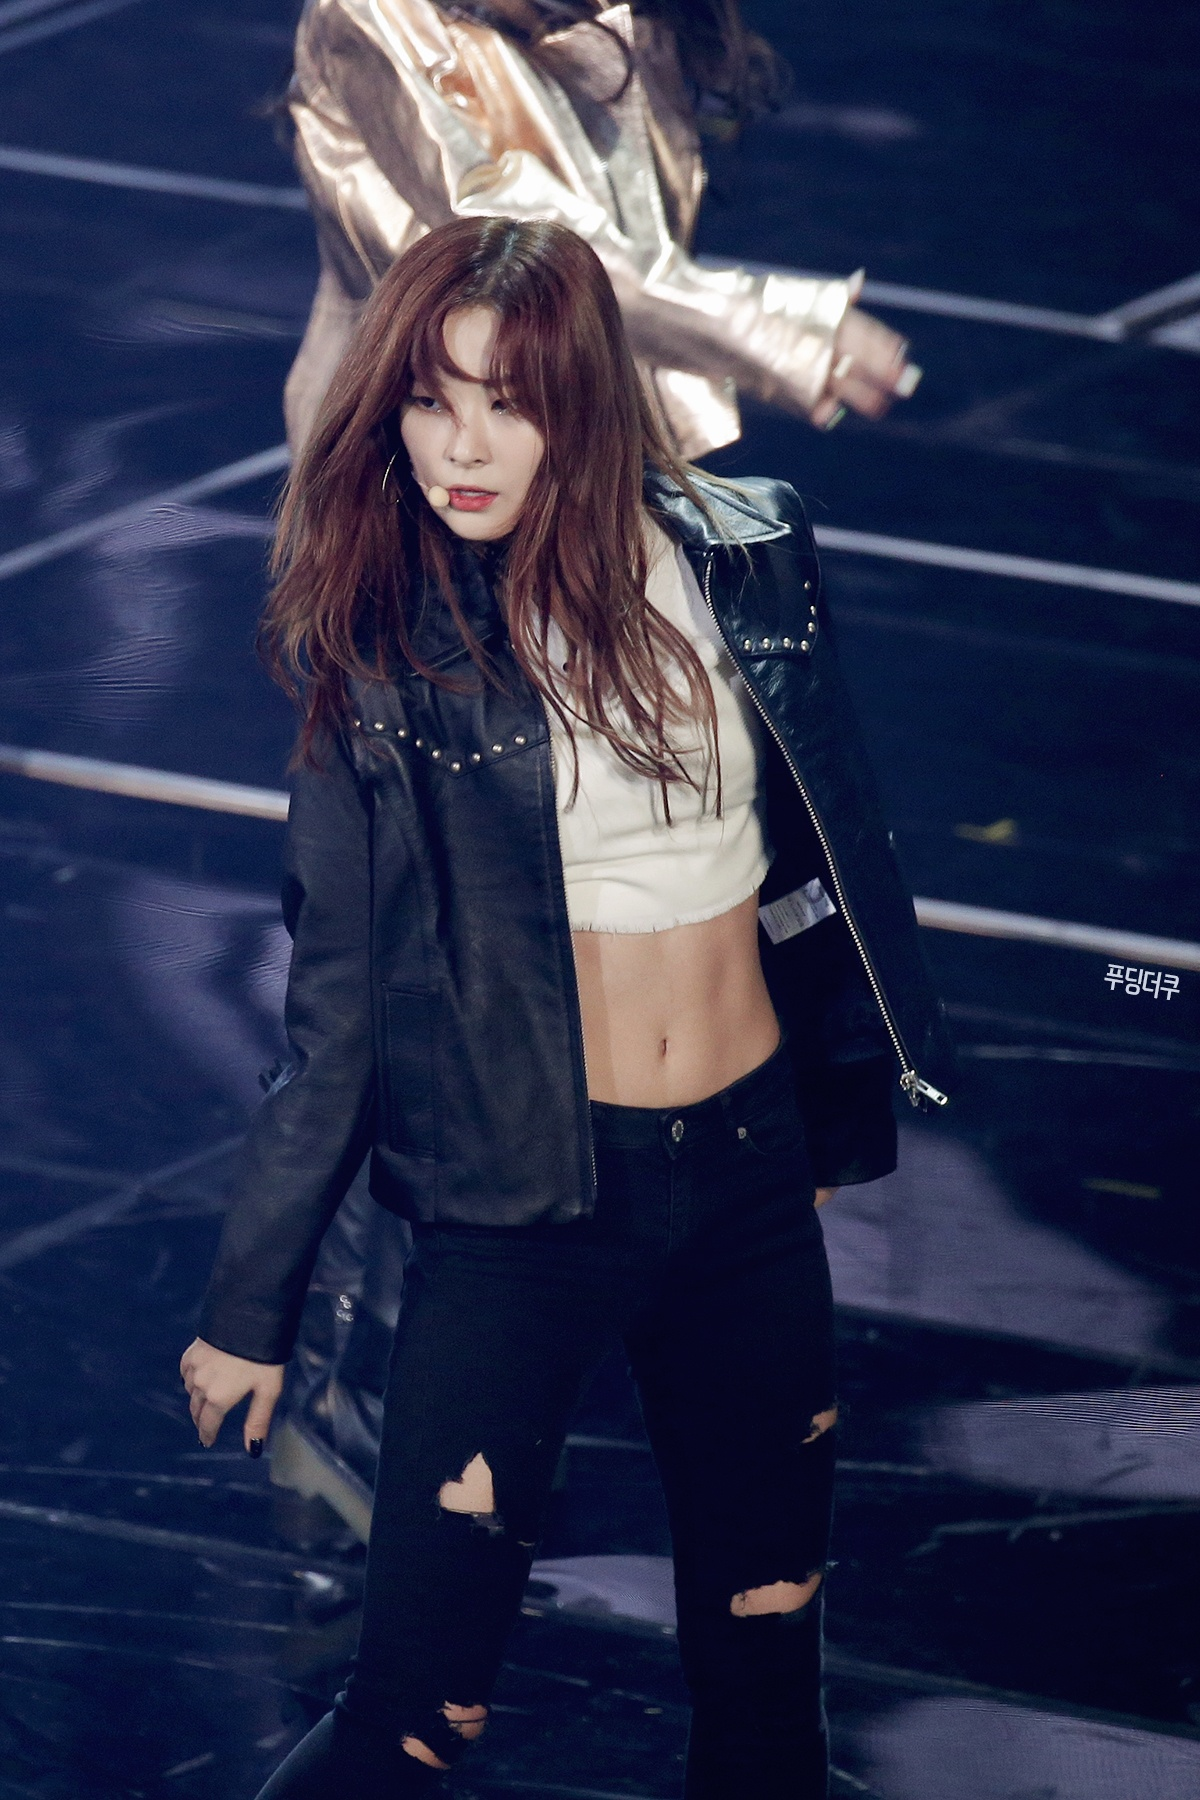 Seulgi rocks this sexy biker chick look. / Source: FIDDLE